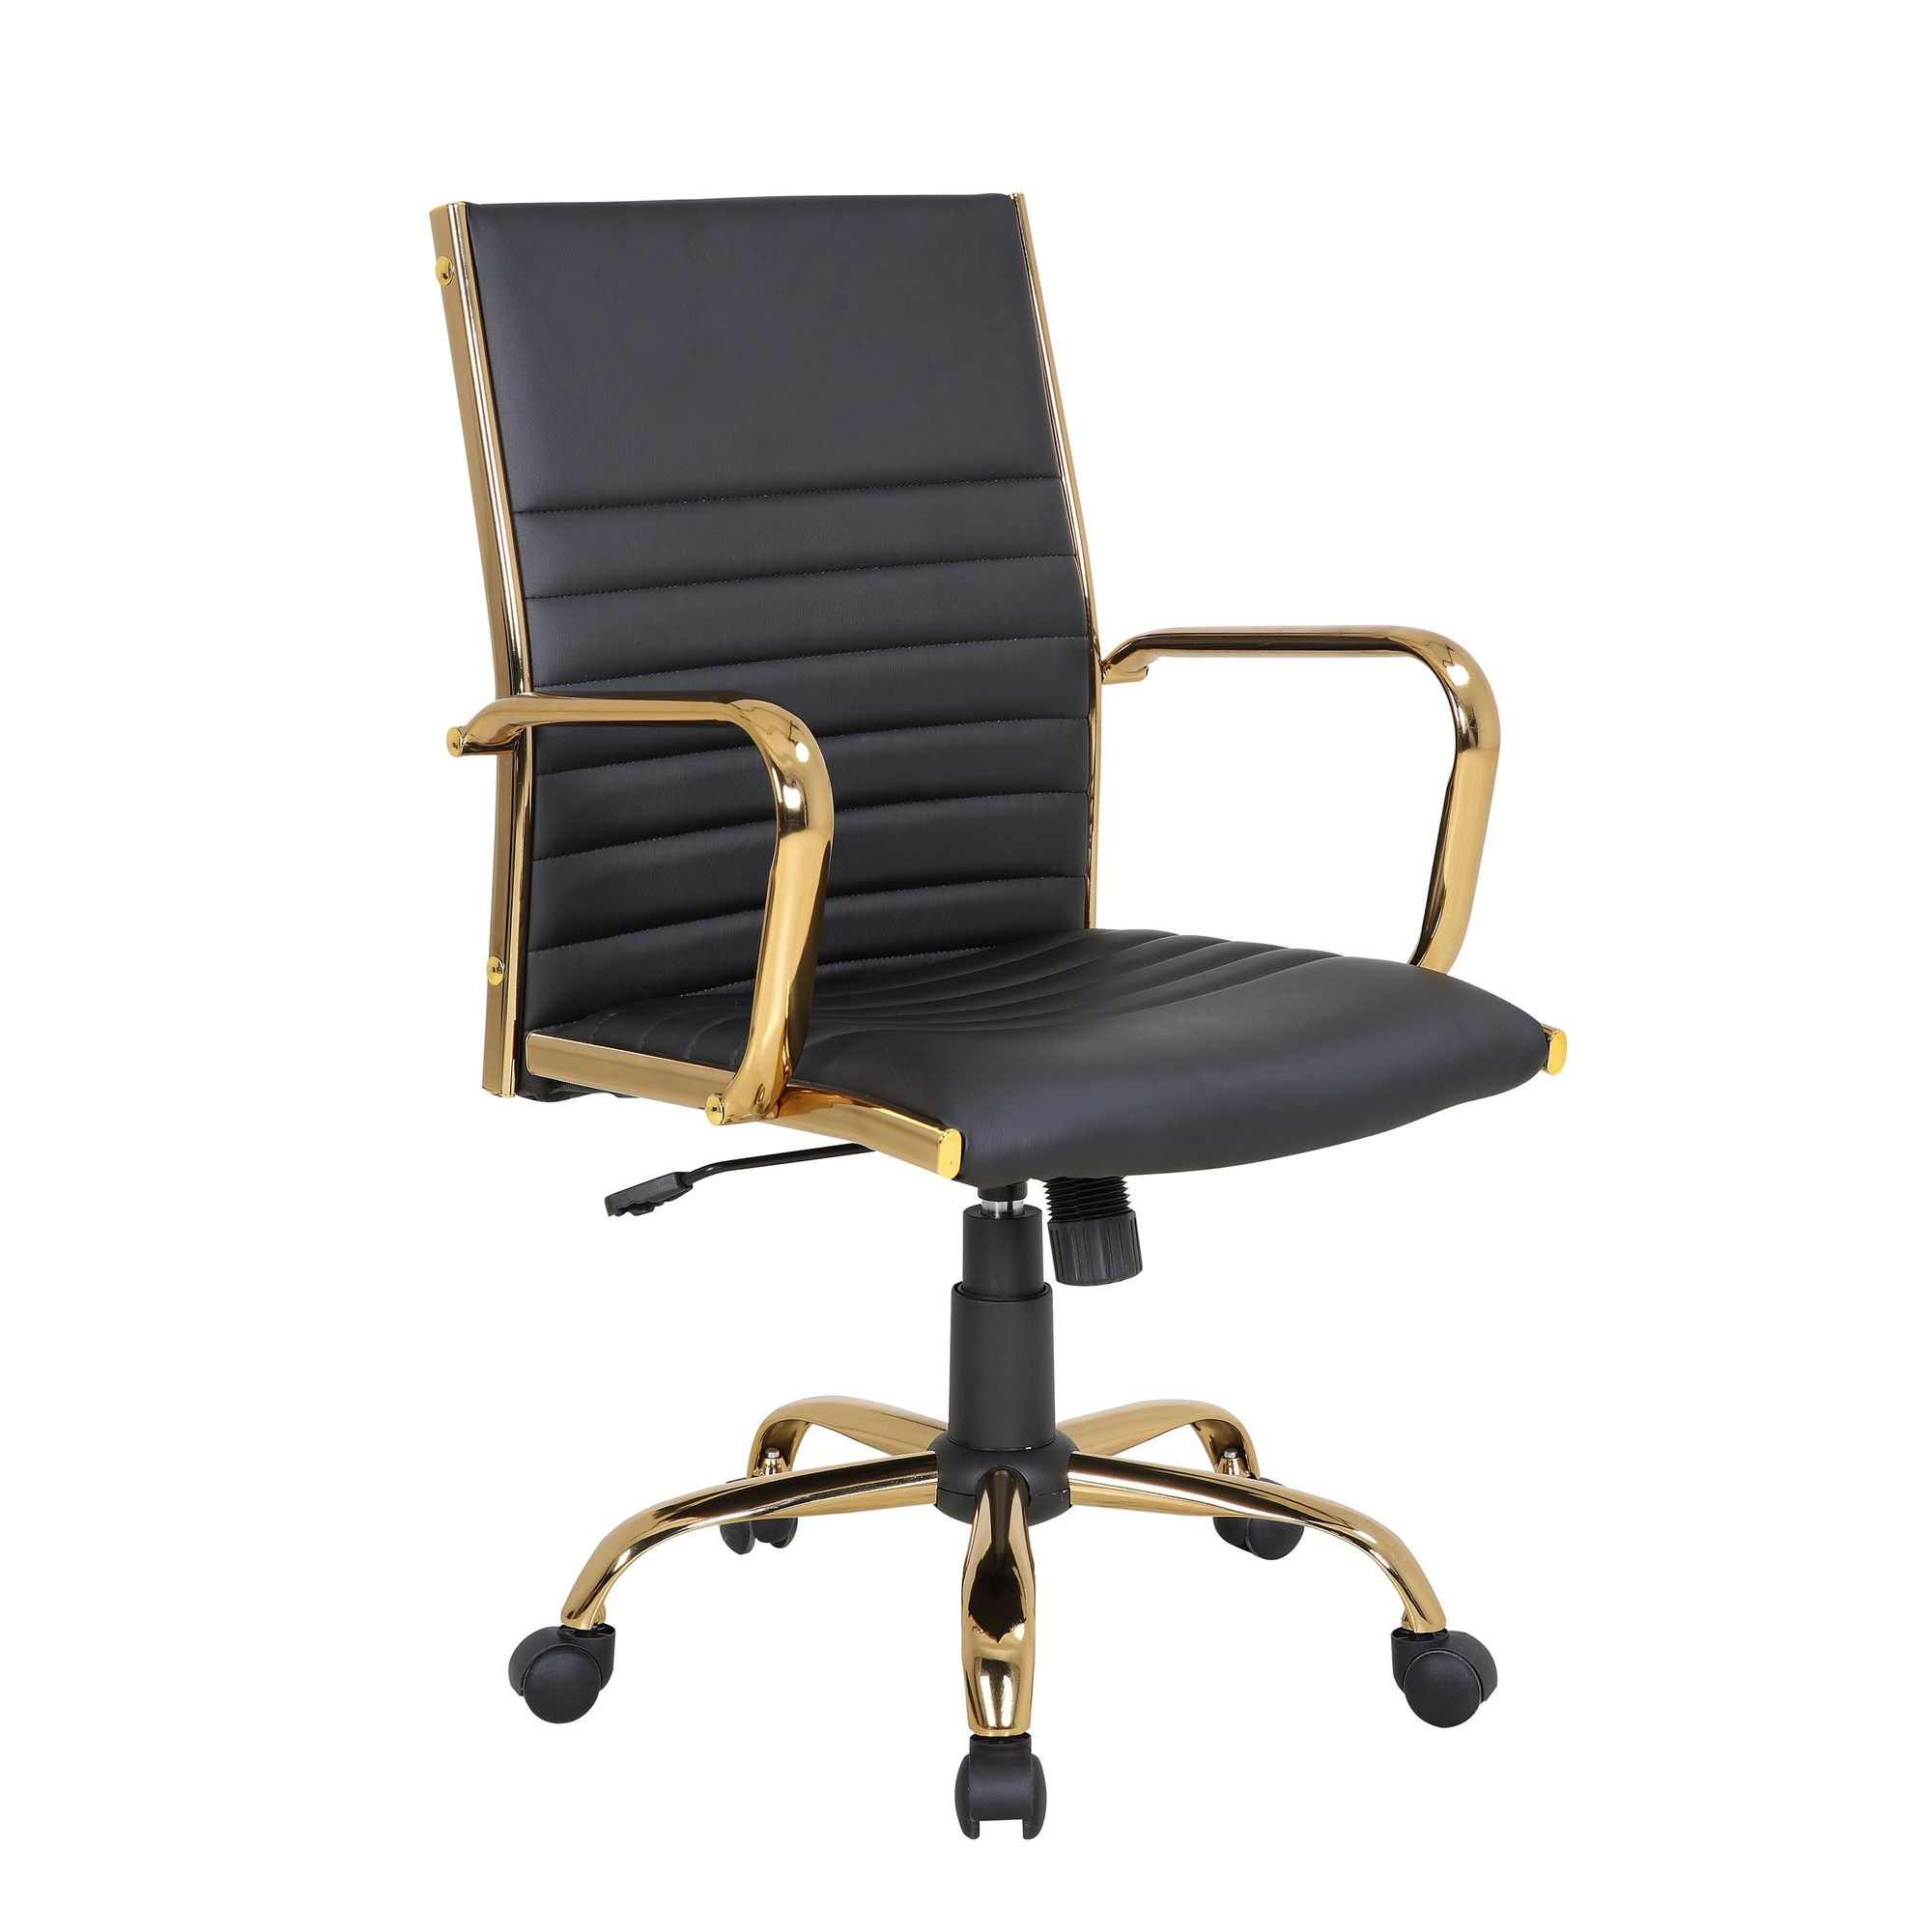 Master Office Chair AU BK 300DPI MAIN_hr.jpg